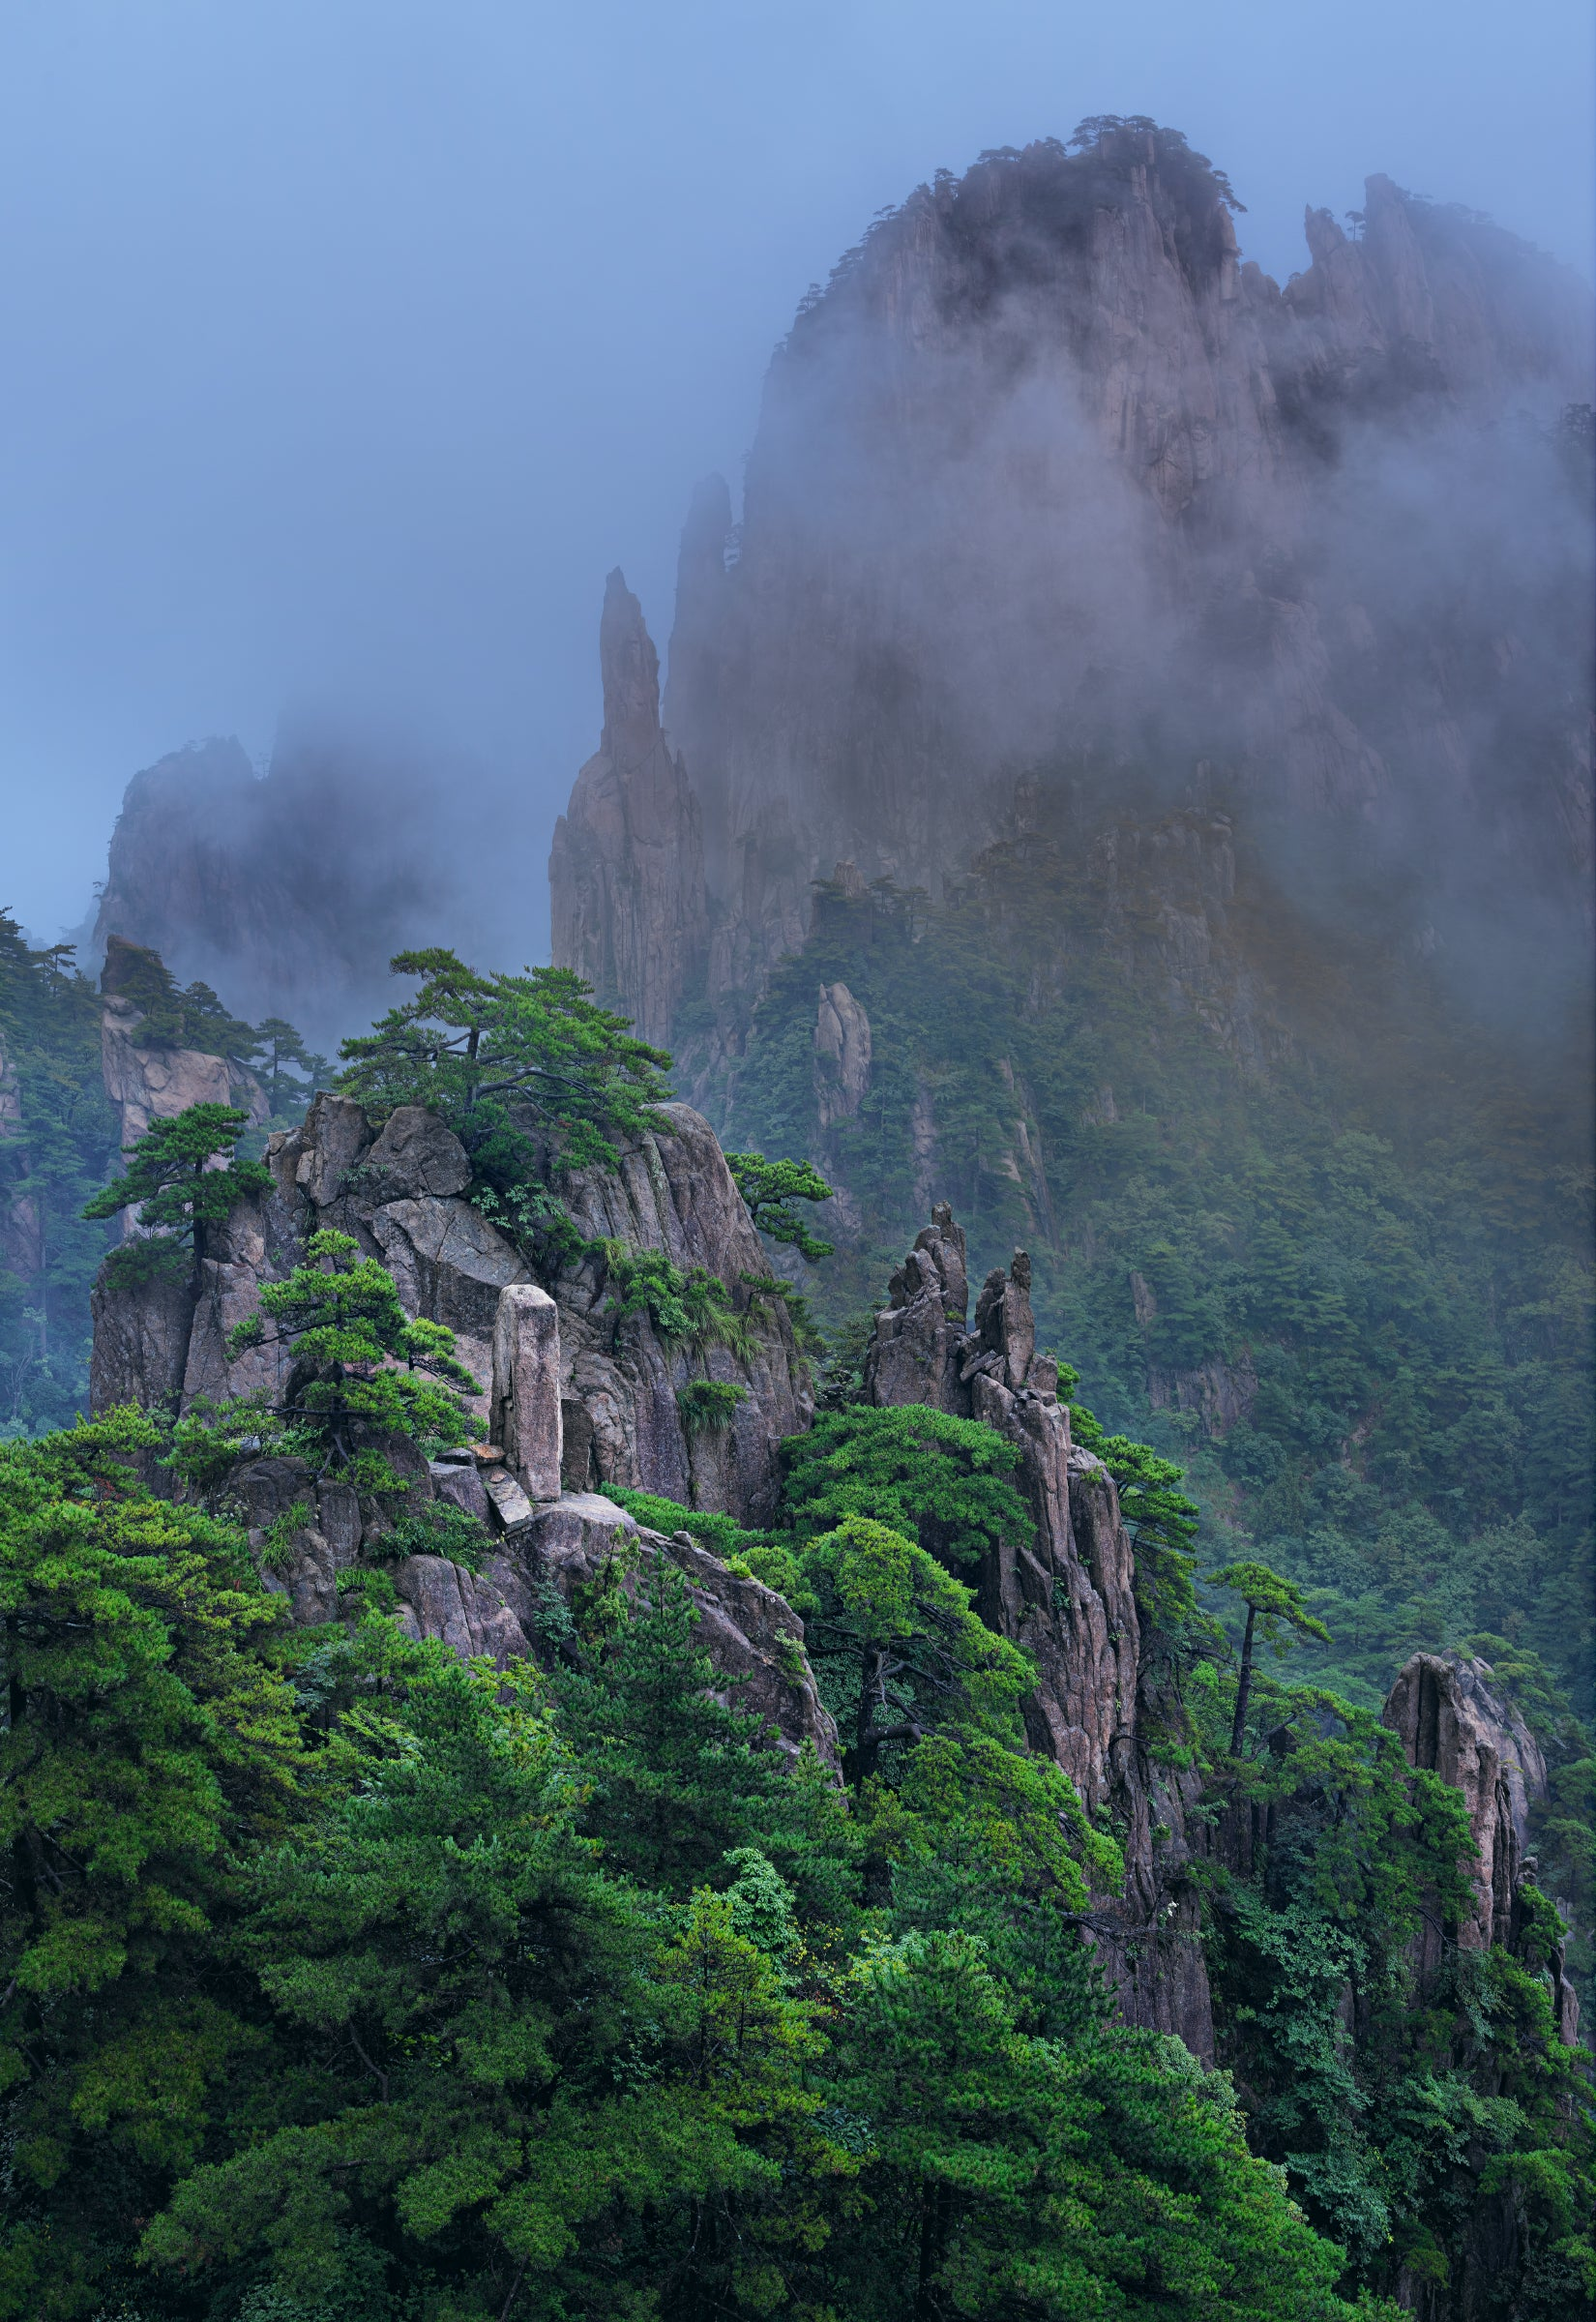 Hazy fog swirling through the rocky mountains of Huangshan China covered in green trees